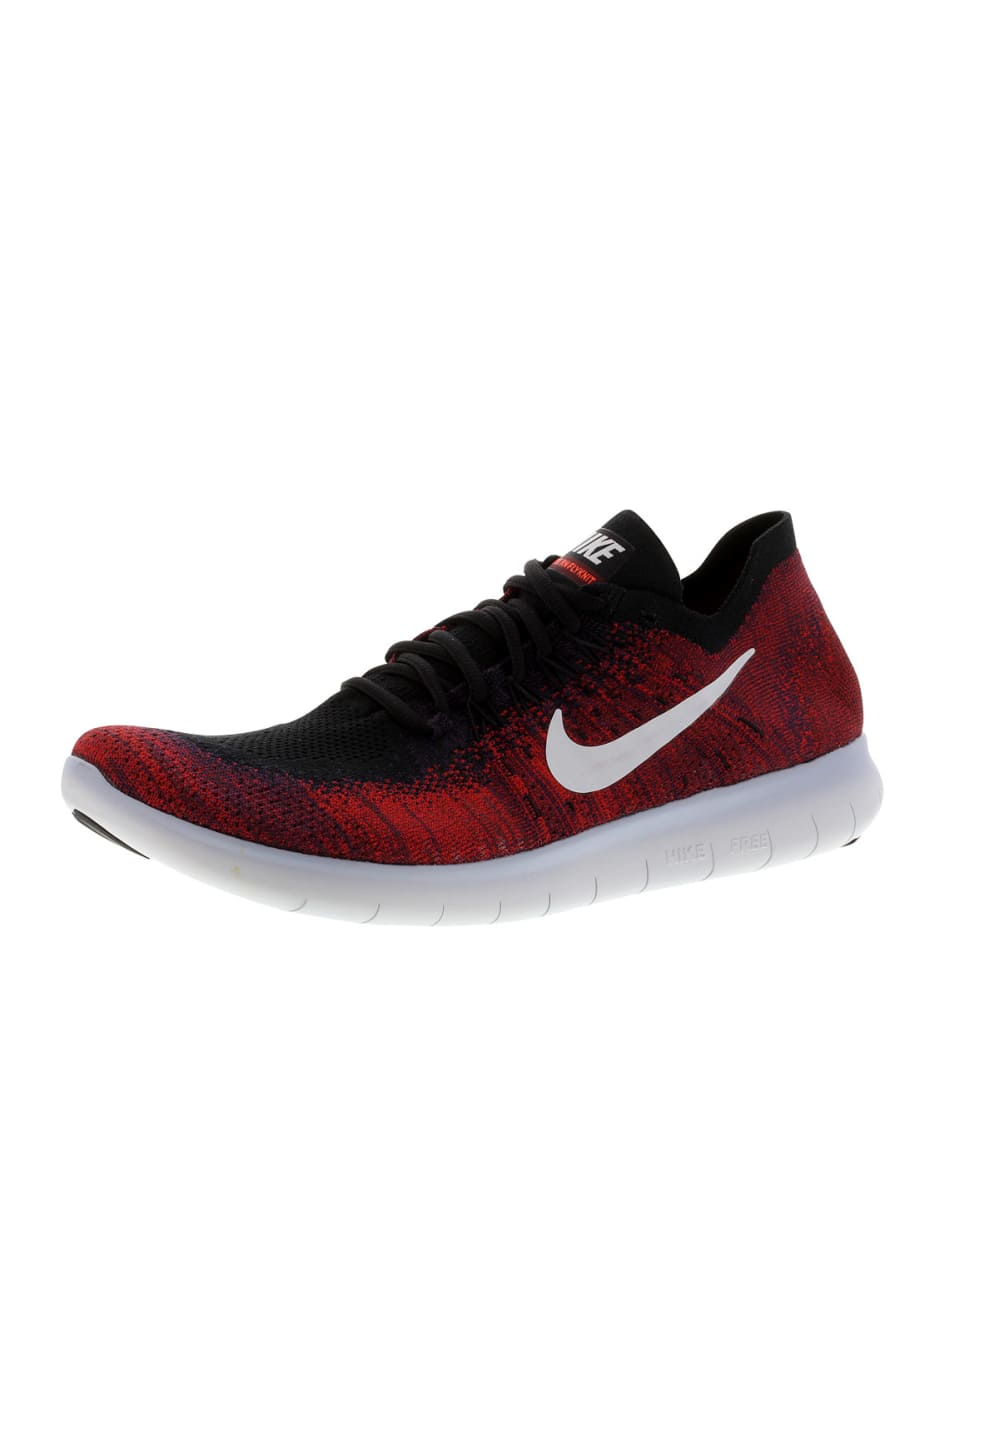 Chaussures Rn Free 2017 Homme Flyknit Rouge Pour Running Nike q34RL5Aj